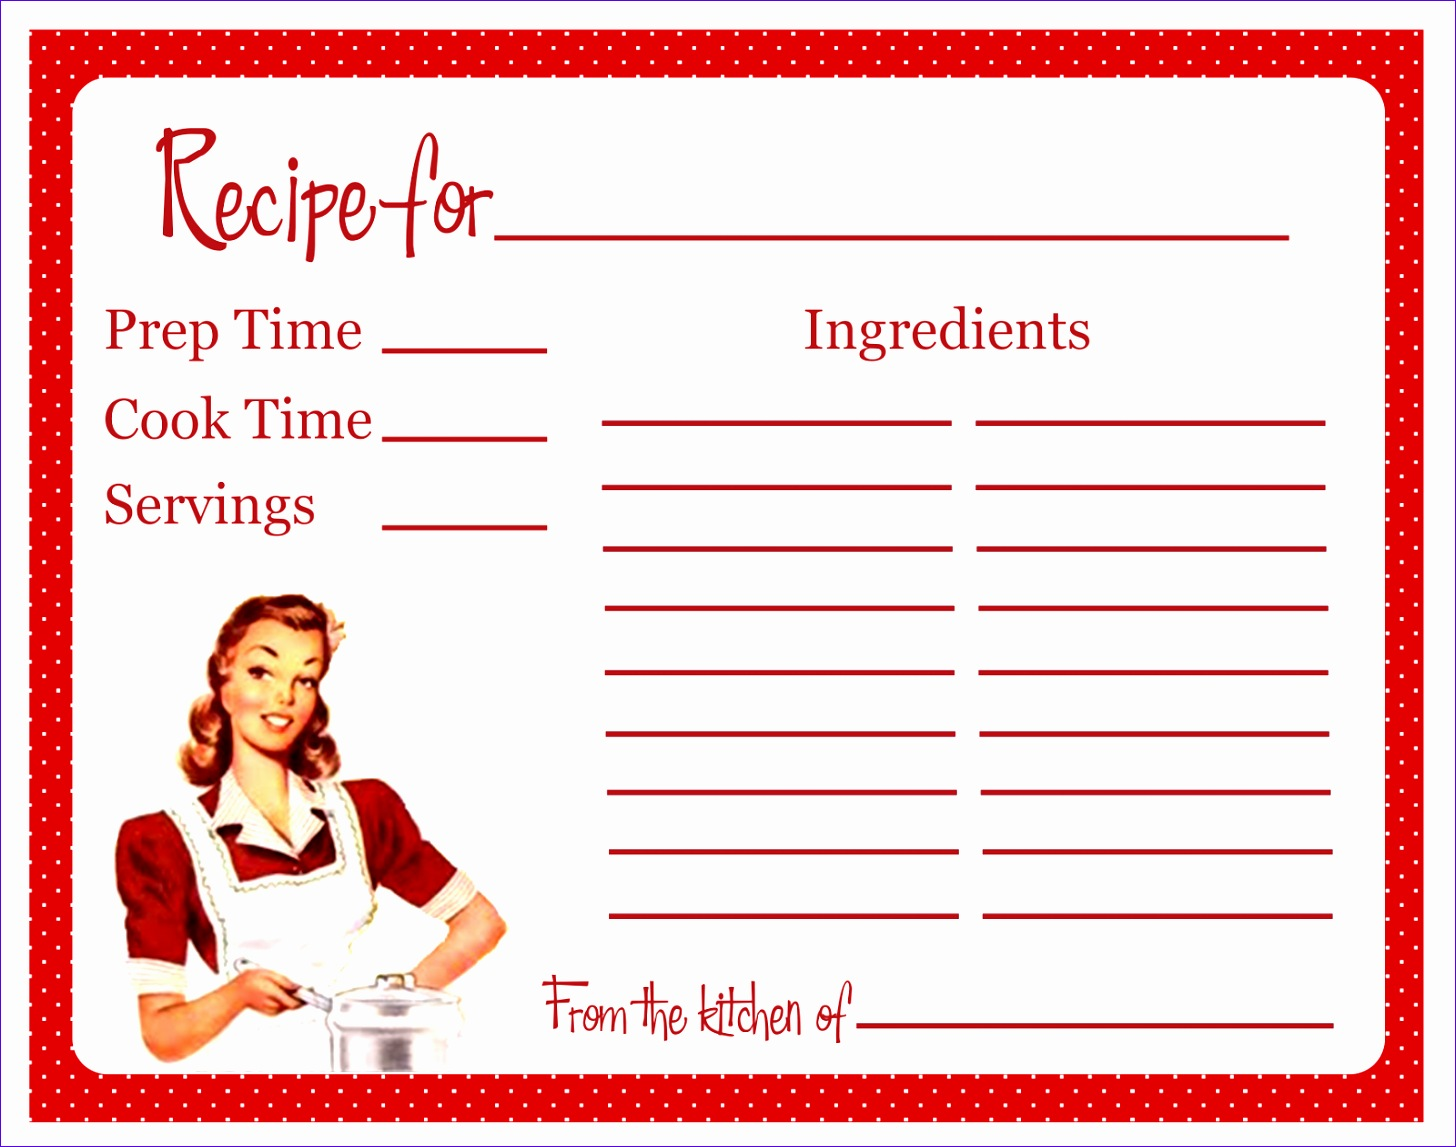 retro themed bridal shower recipe cards 14561147